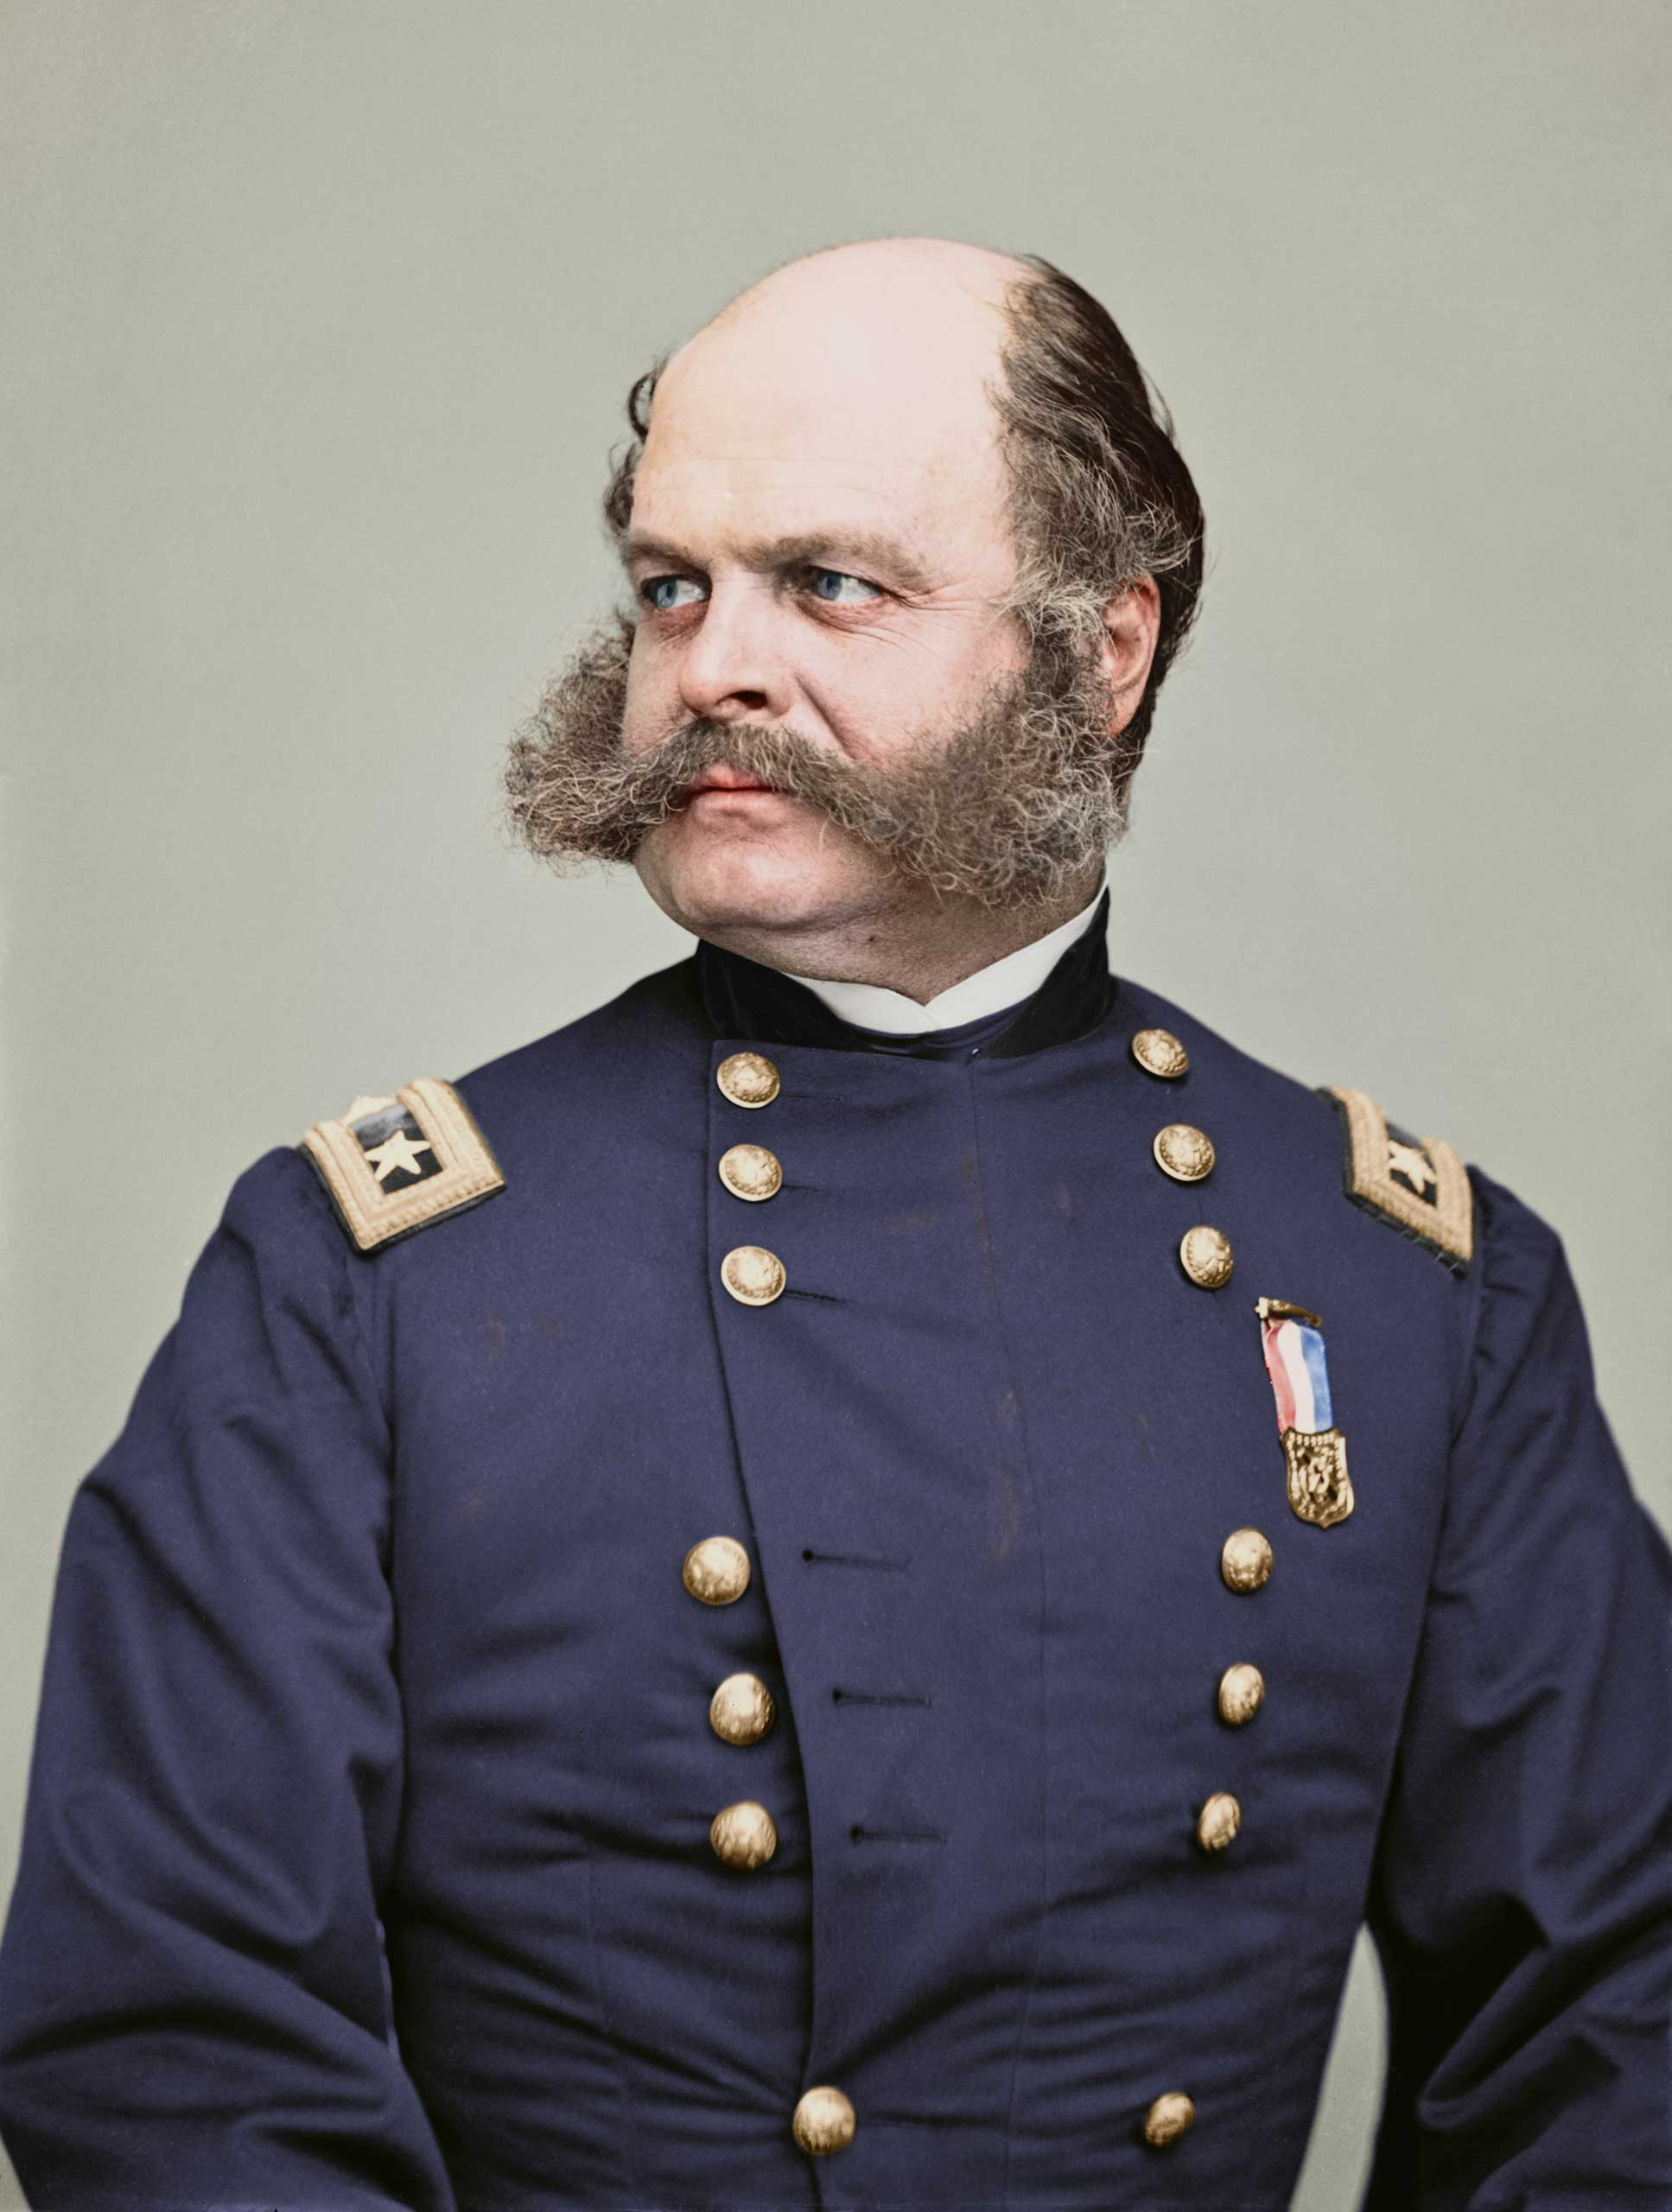 Portrait of Maj. Gen. Ambrose E. Burnside, officer of the Federal Army, 1860-1865.